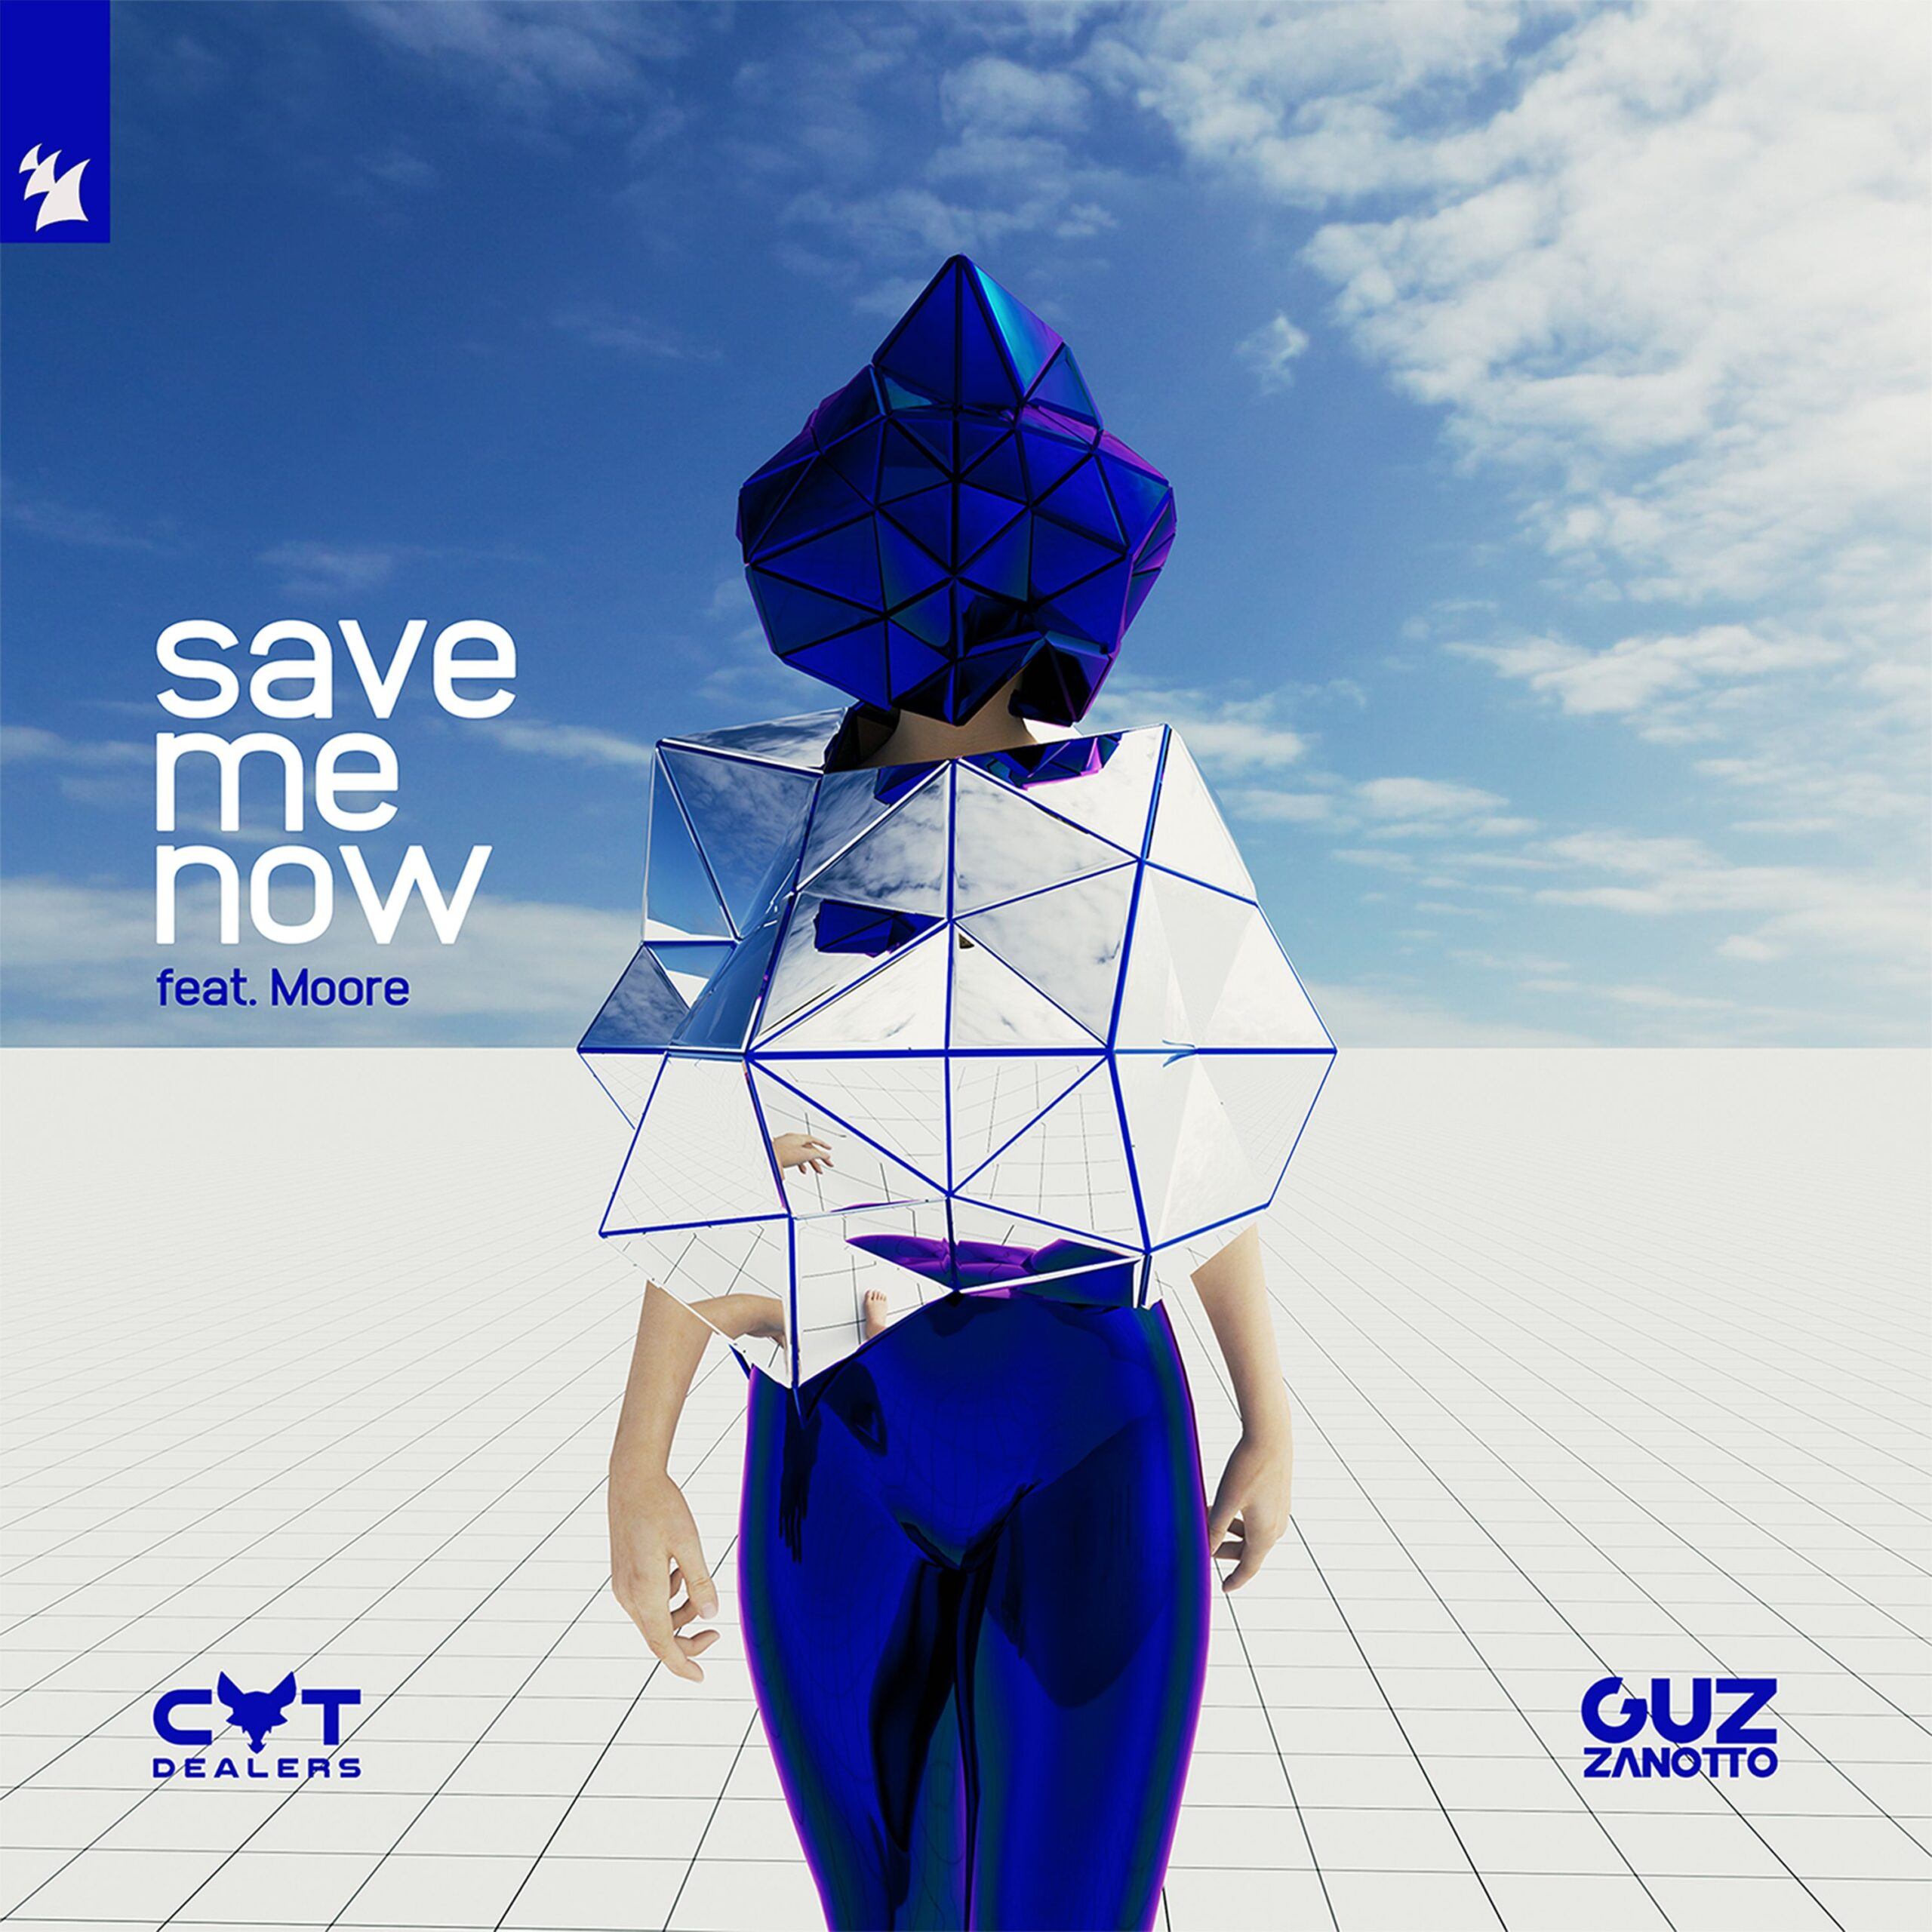 The Brazilian duo Cat Dealers drops a new single 'Save Me Now' on Armada Music!